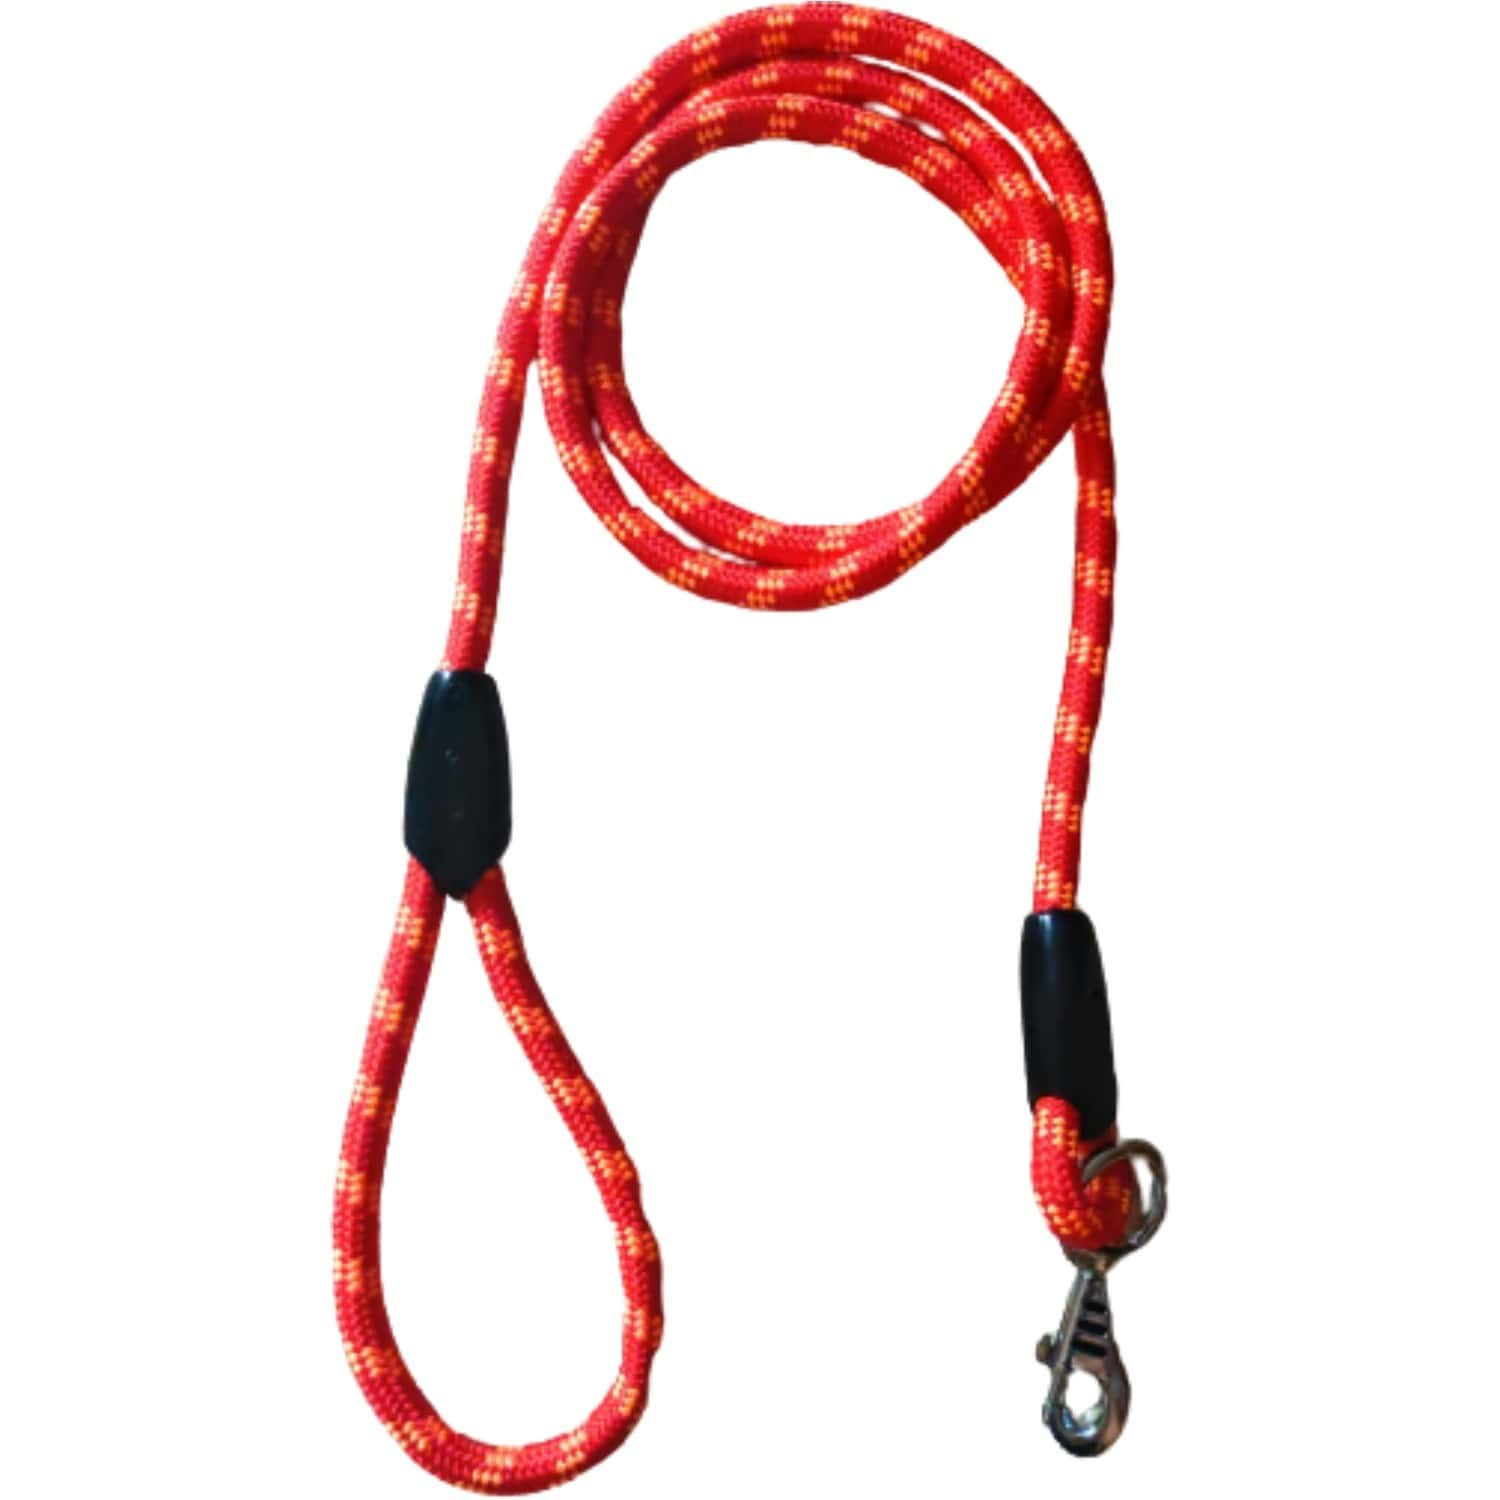 Pawcloud Nylon Rope Leash For Medium & Large Dogs Red Medium Length - 48 Inches